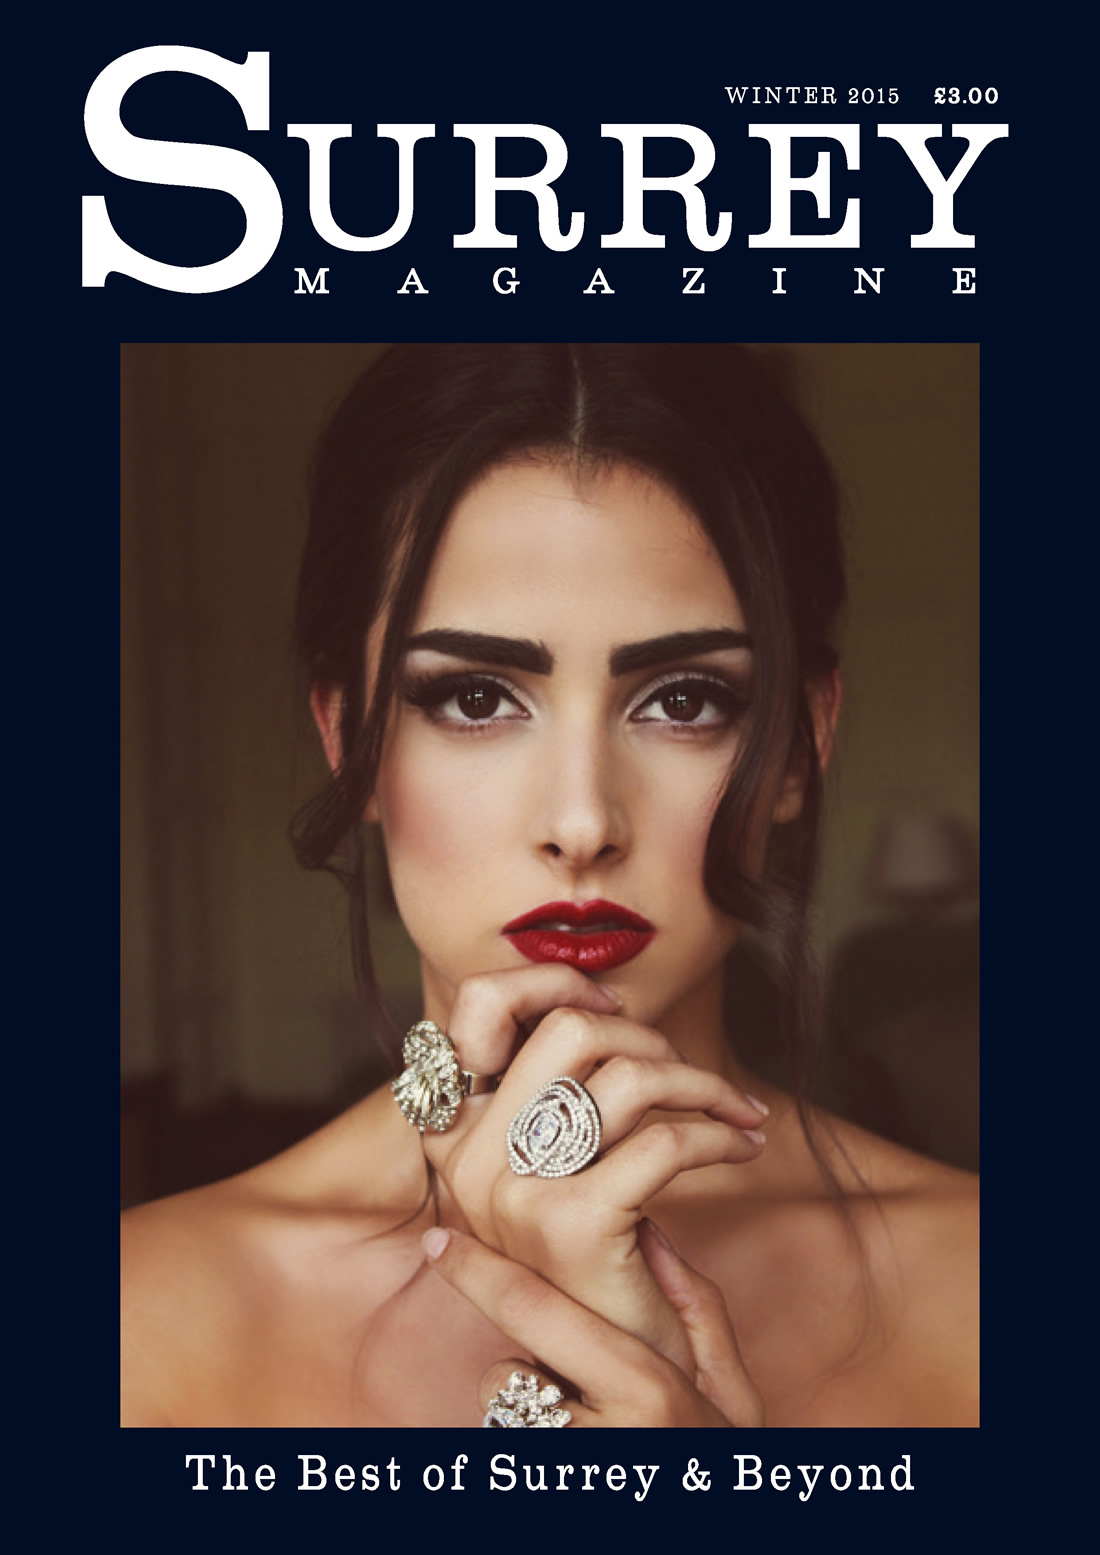 Surrey Magazine Winter 2015